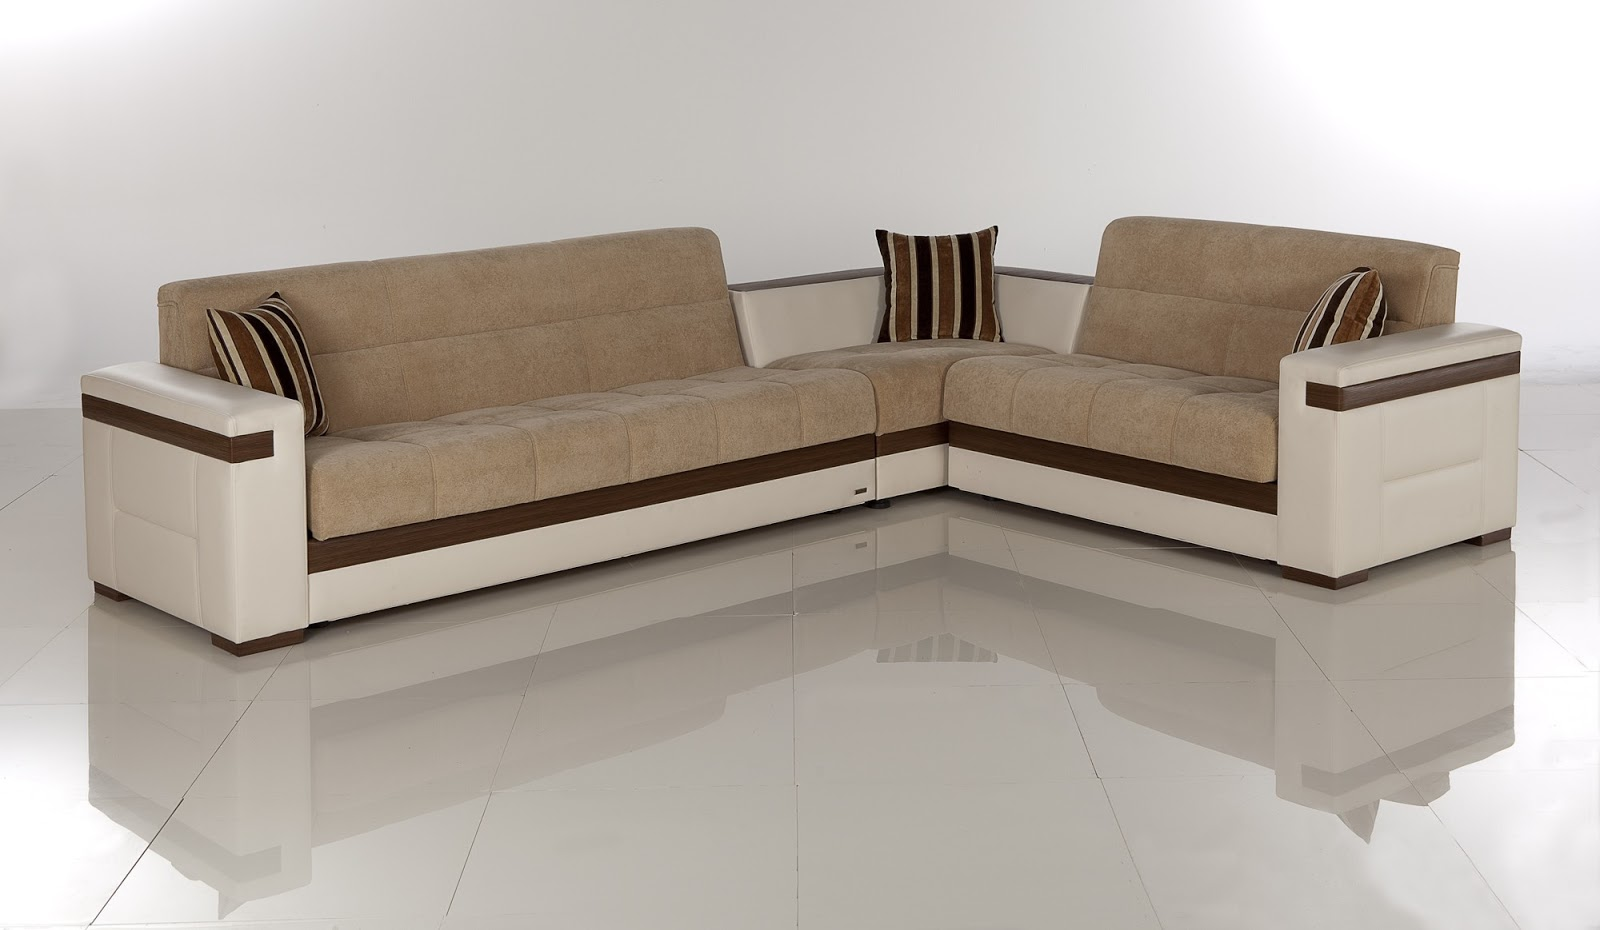 designer sofa furniture chester set designs ideas home and design